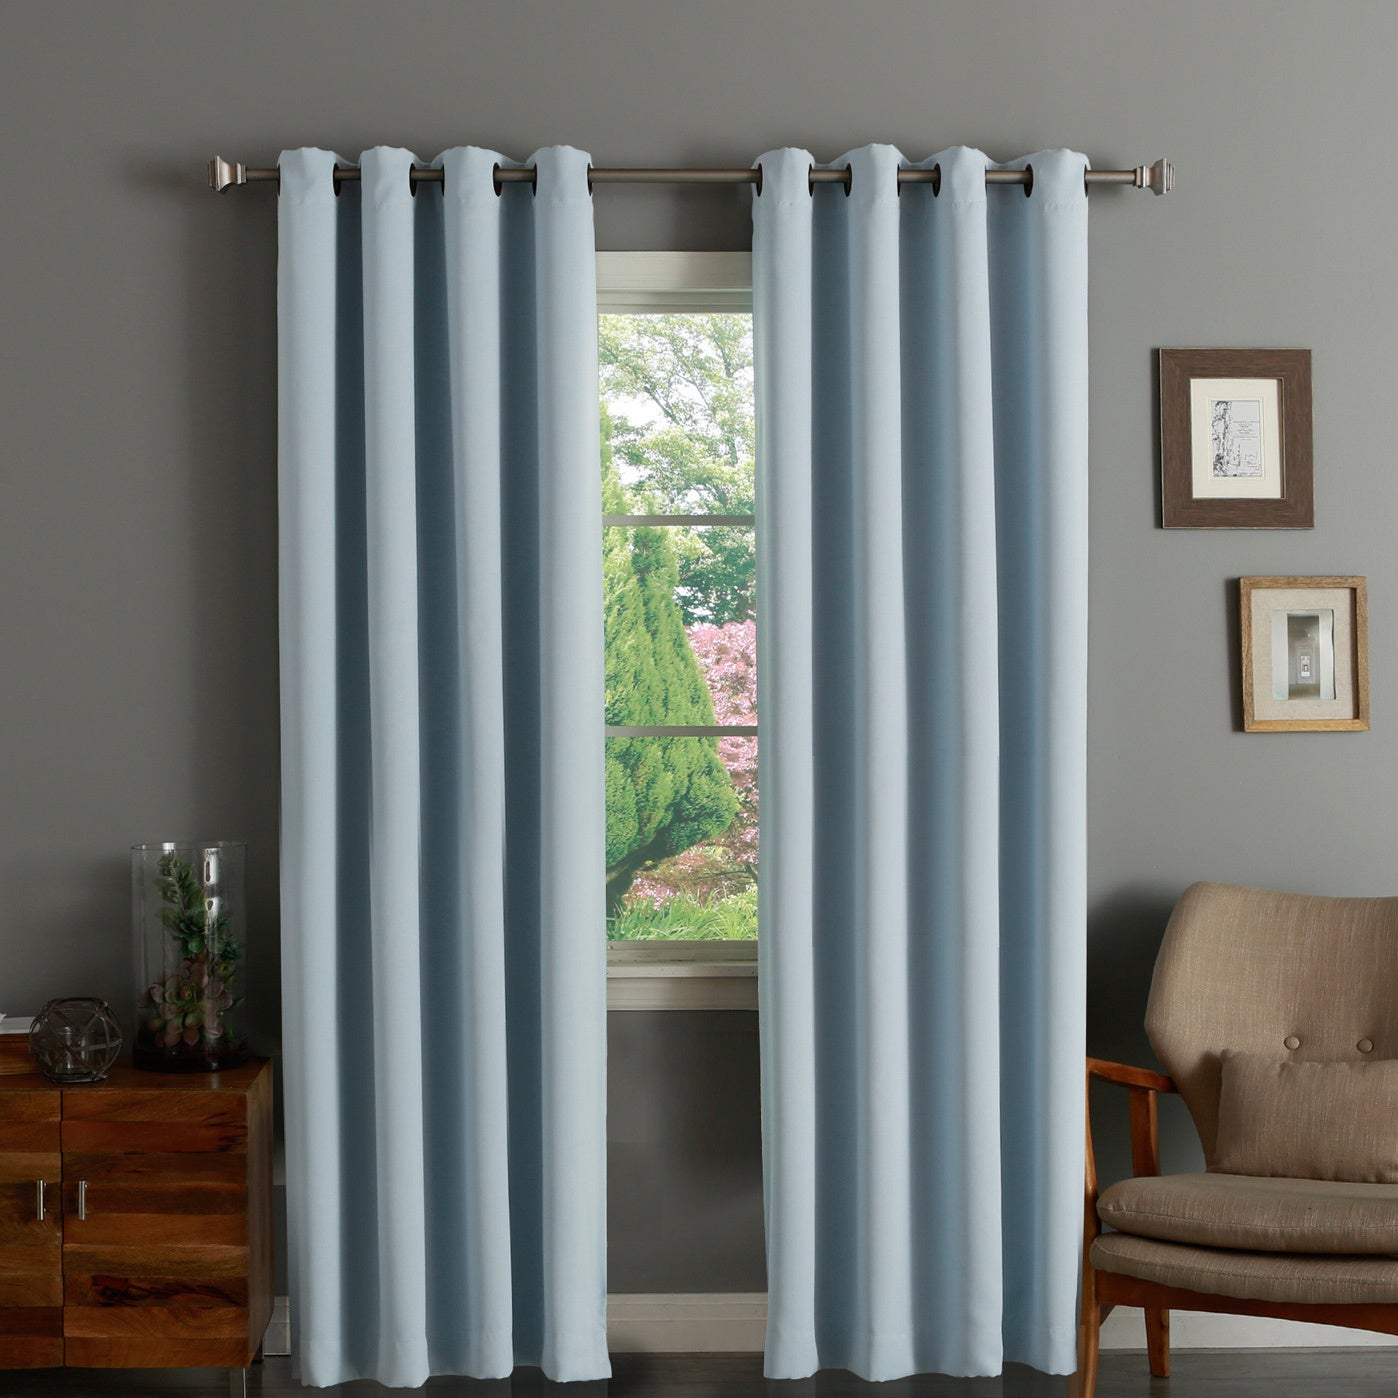 Aurora Home Thermal Insulated Blackout Grommet Top 84-inch Curtain Panel Pair - 52 x 84 (More options available)